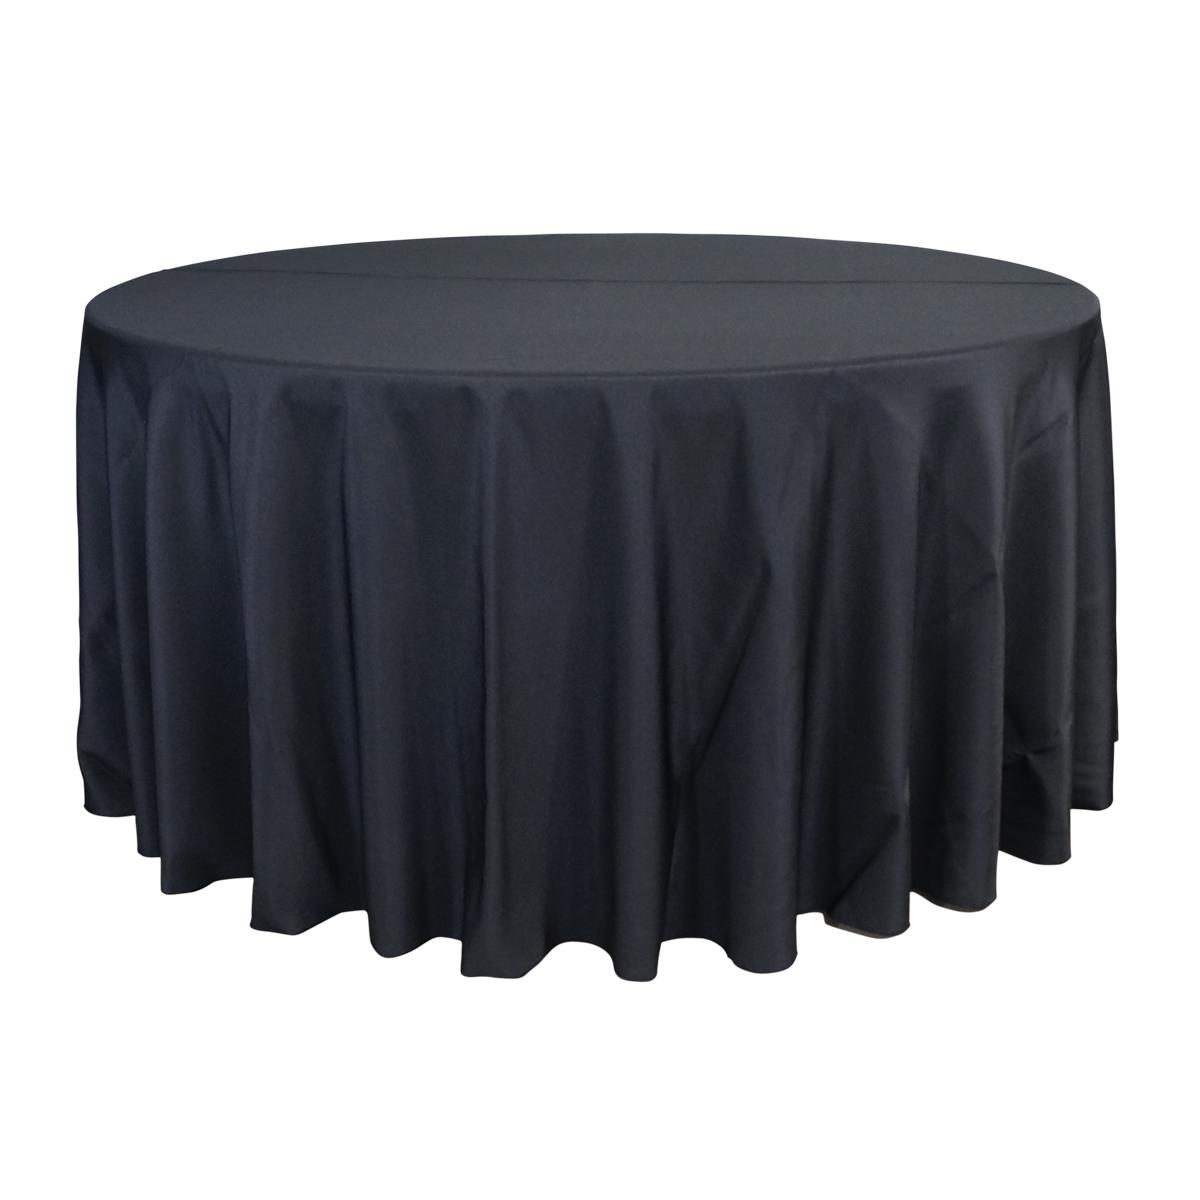 "Economy Polyester Poplin 120"" Round Tablecloth - Black"